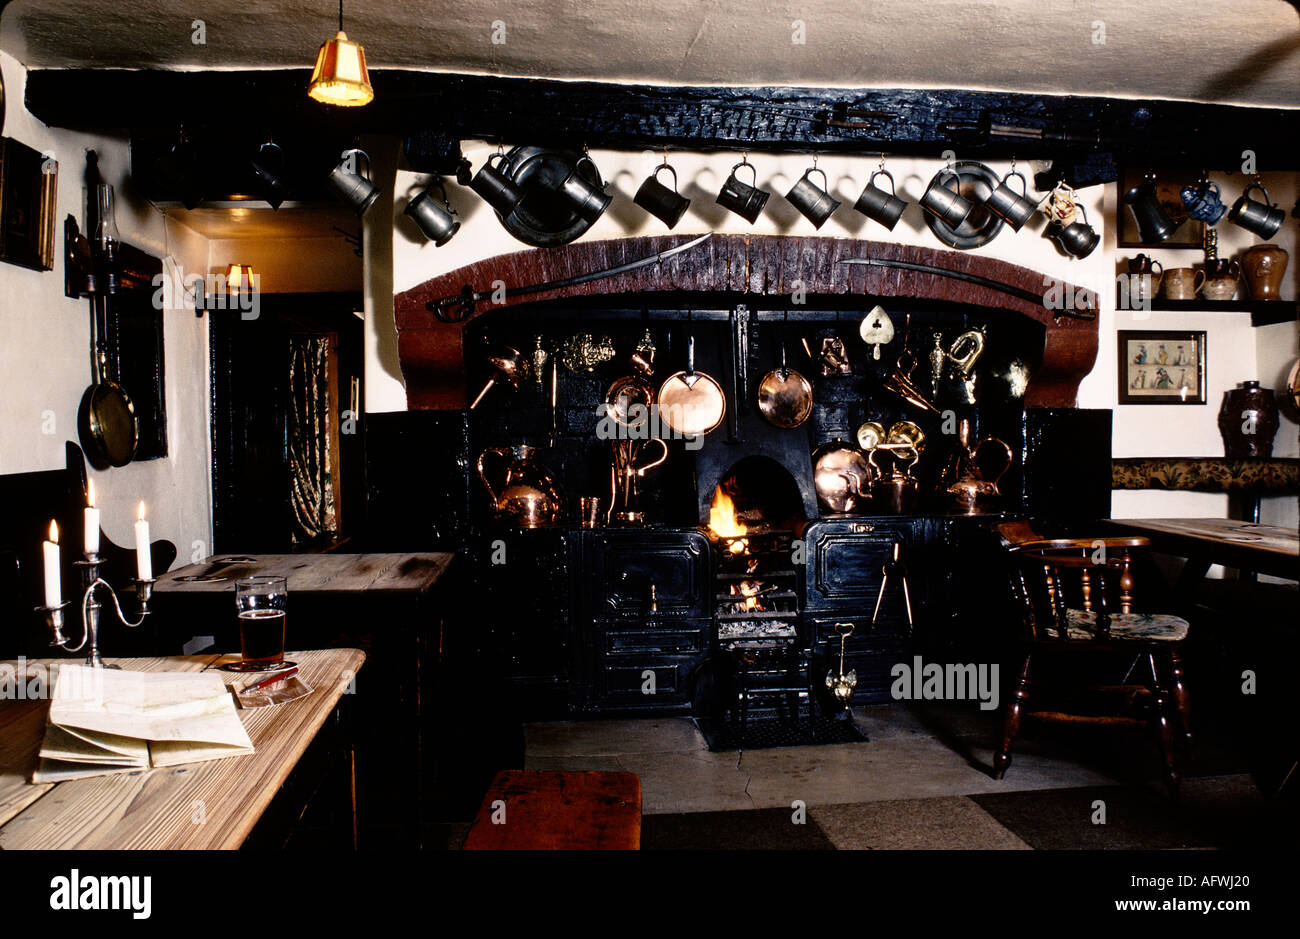 VILLAGE PUB THE OLDE GATE INN BRASSINGTON DERBYSHIRE HOMER SYKES - Stock Image